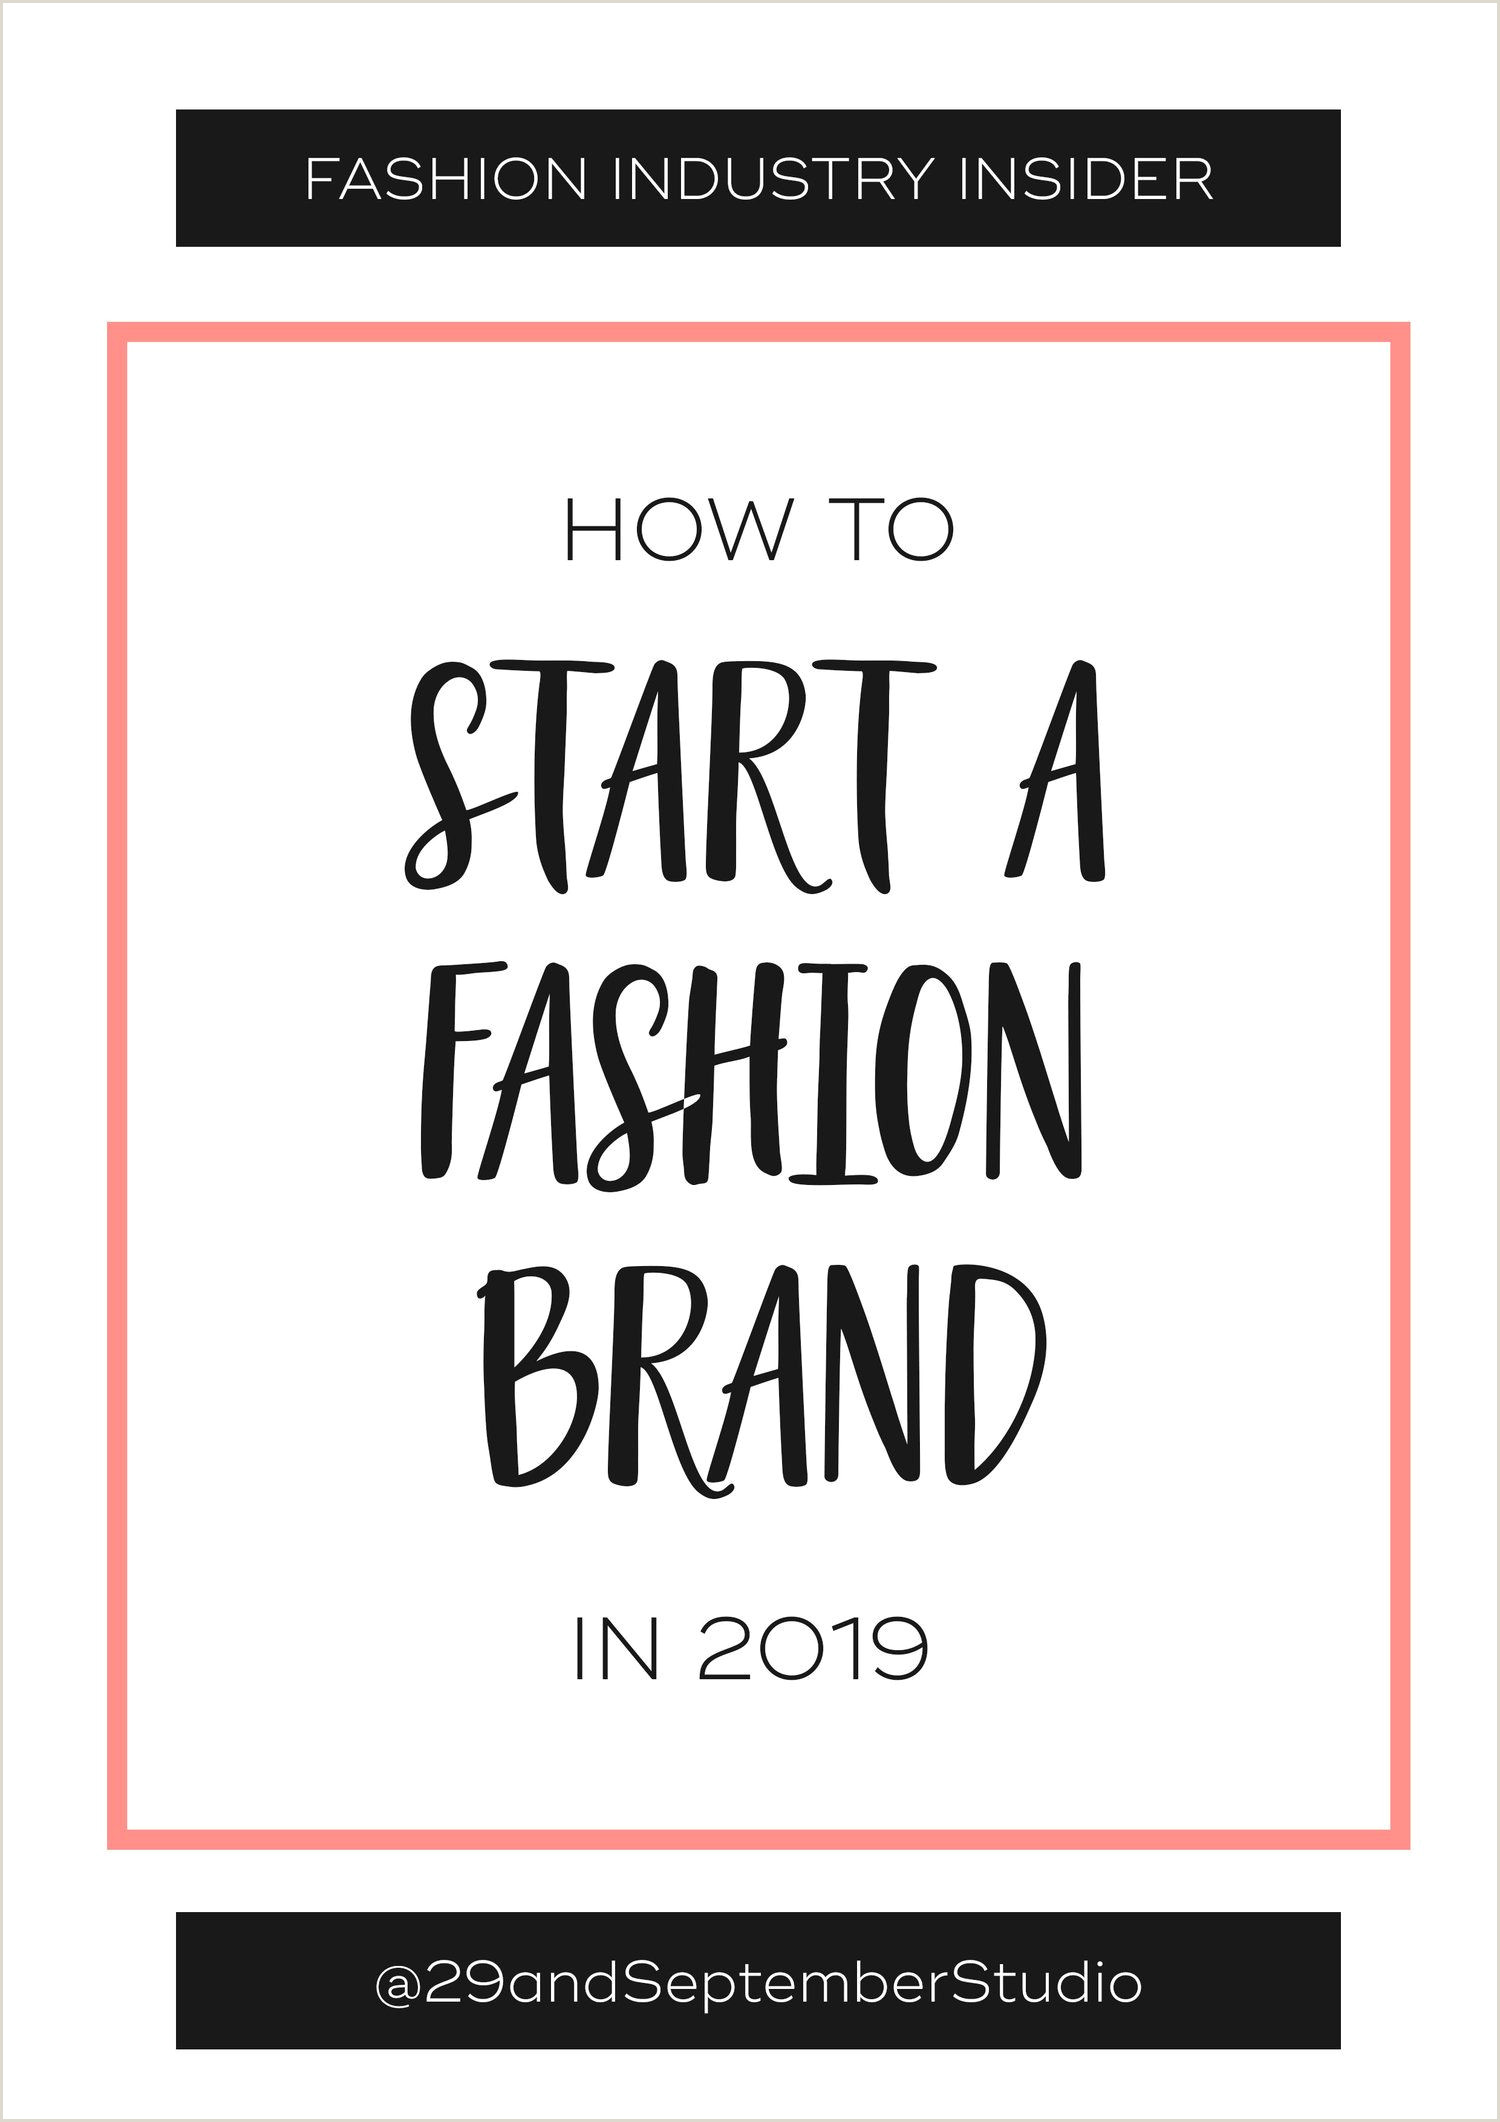 Standard Cv format In Nigeria Pdf How to Start Fashion Business In Plan for Design Nigeria